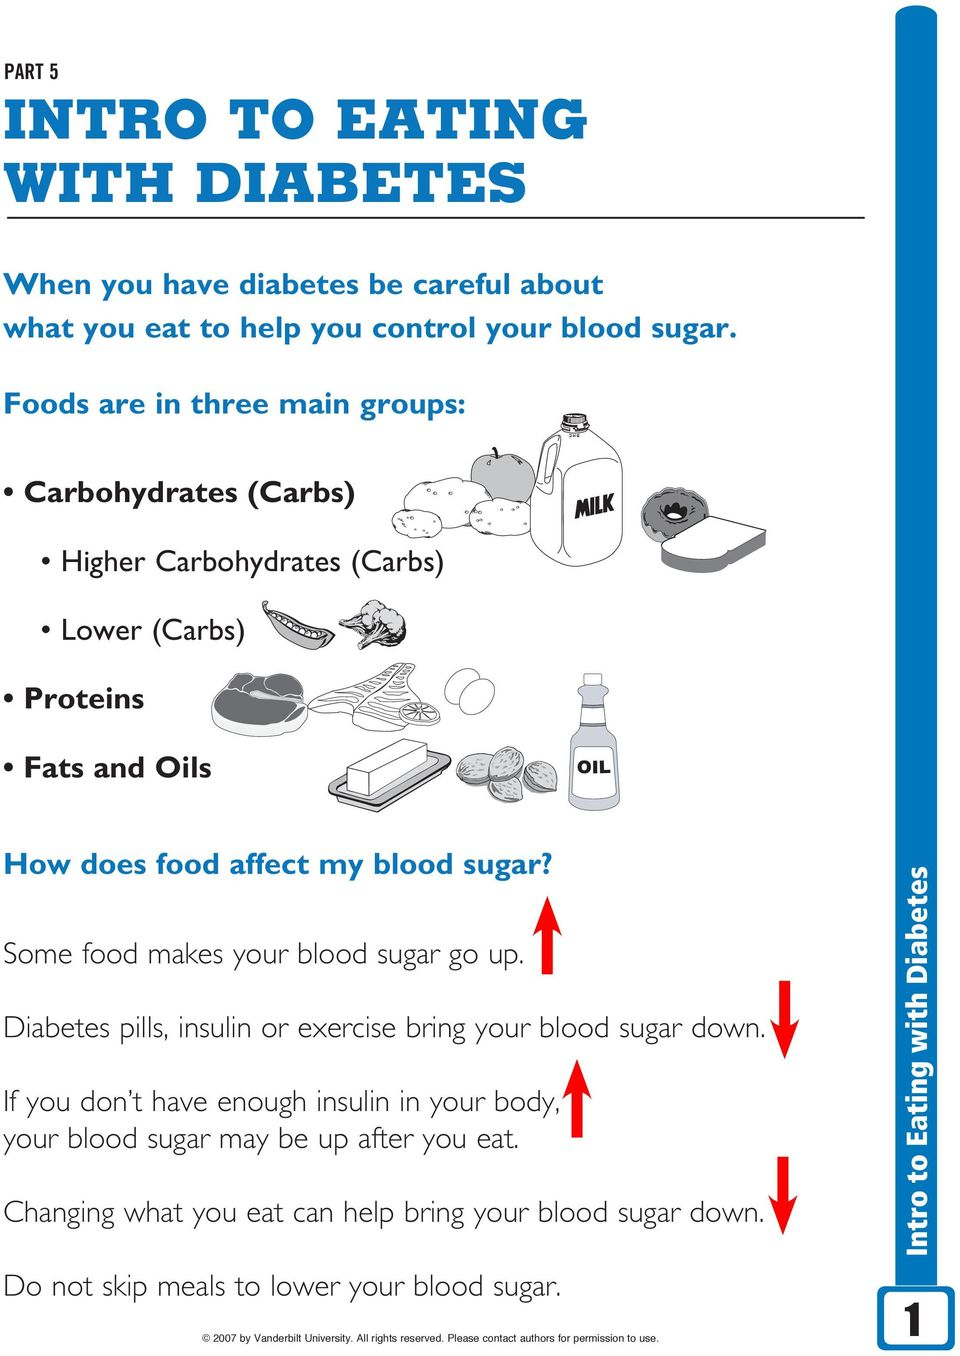 blood sugar? Some food makes your blood sugar go up. Diabetes pills, insulin or exercise bring your blood sugar down.